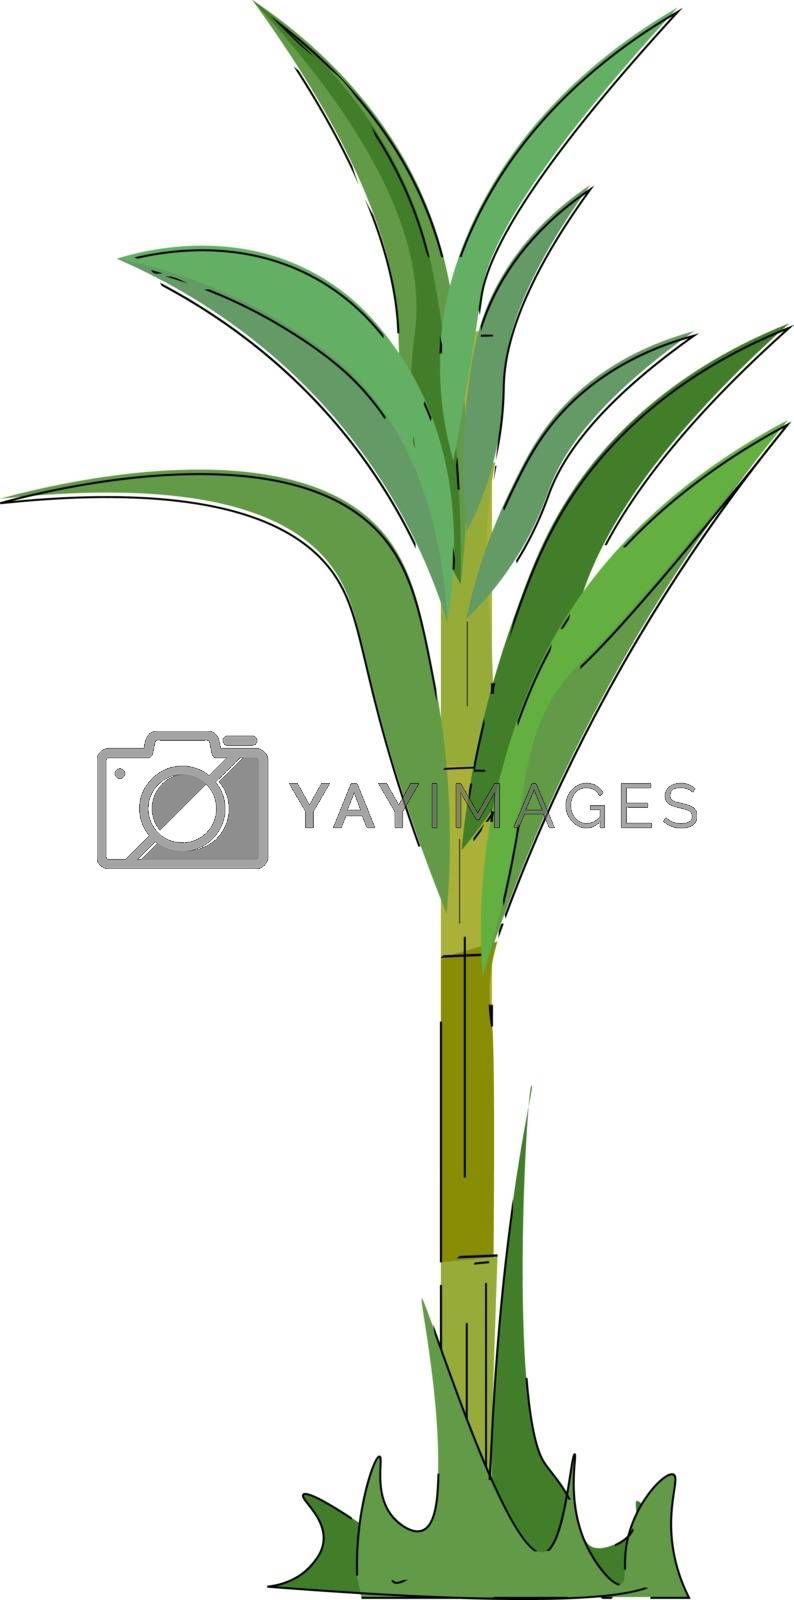 Royalty free image of A green-colored sugarcane plant vector or color illustration by Morphart